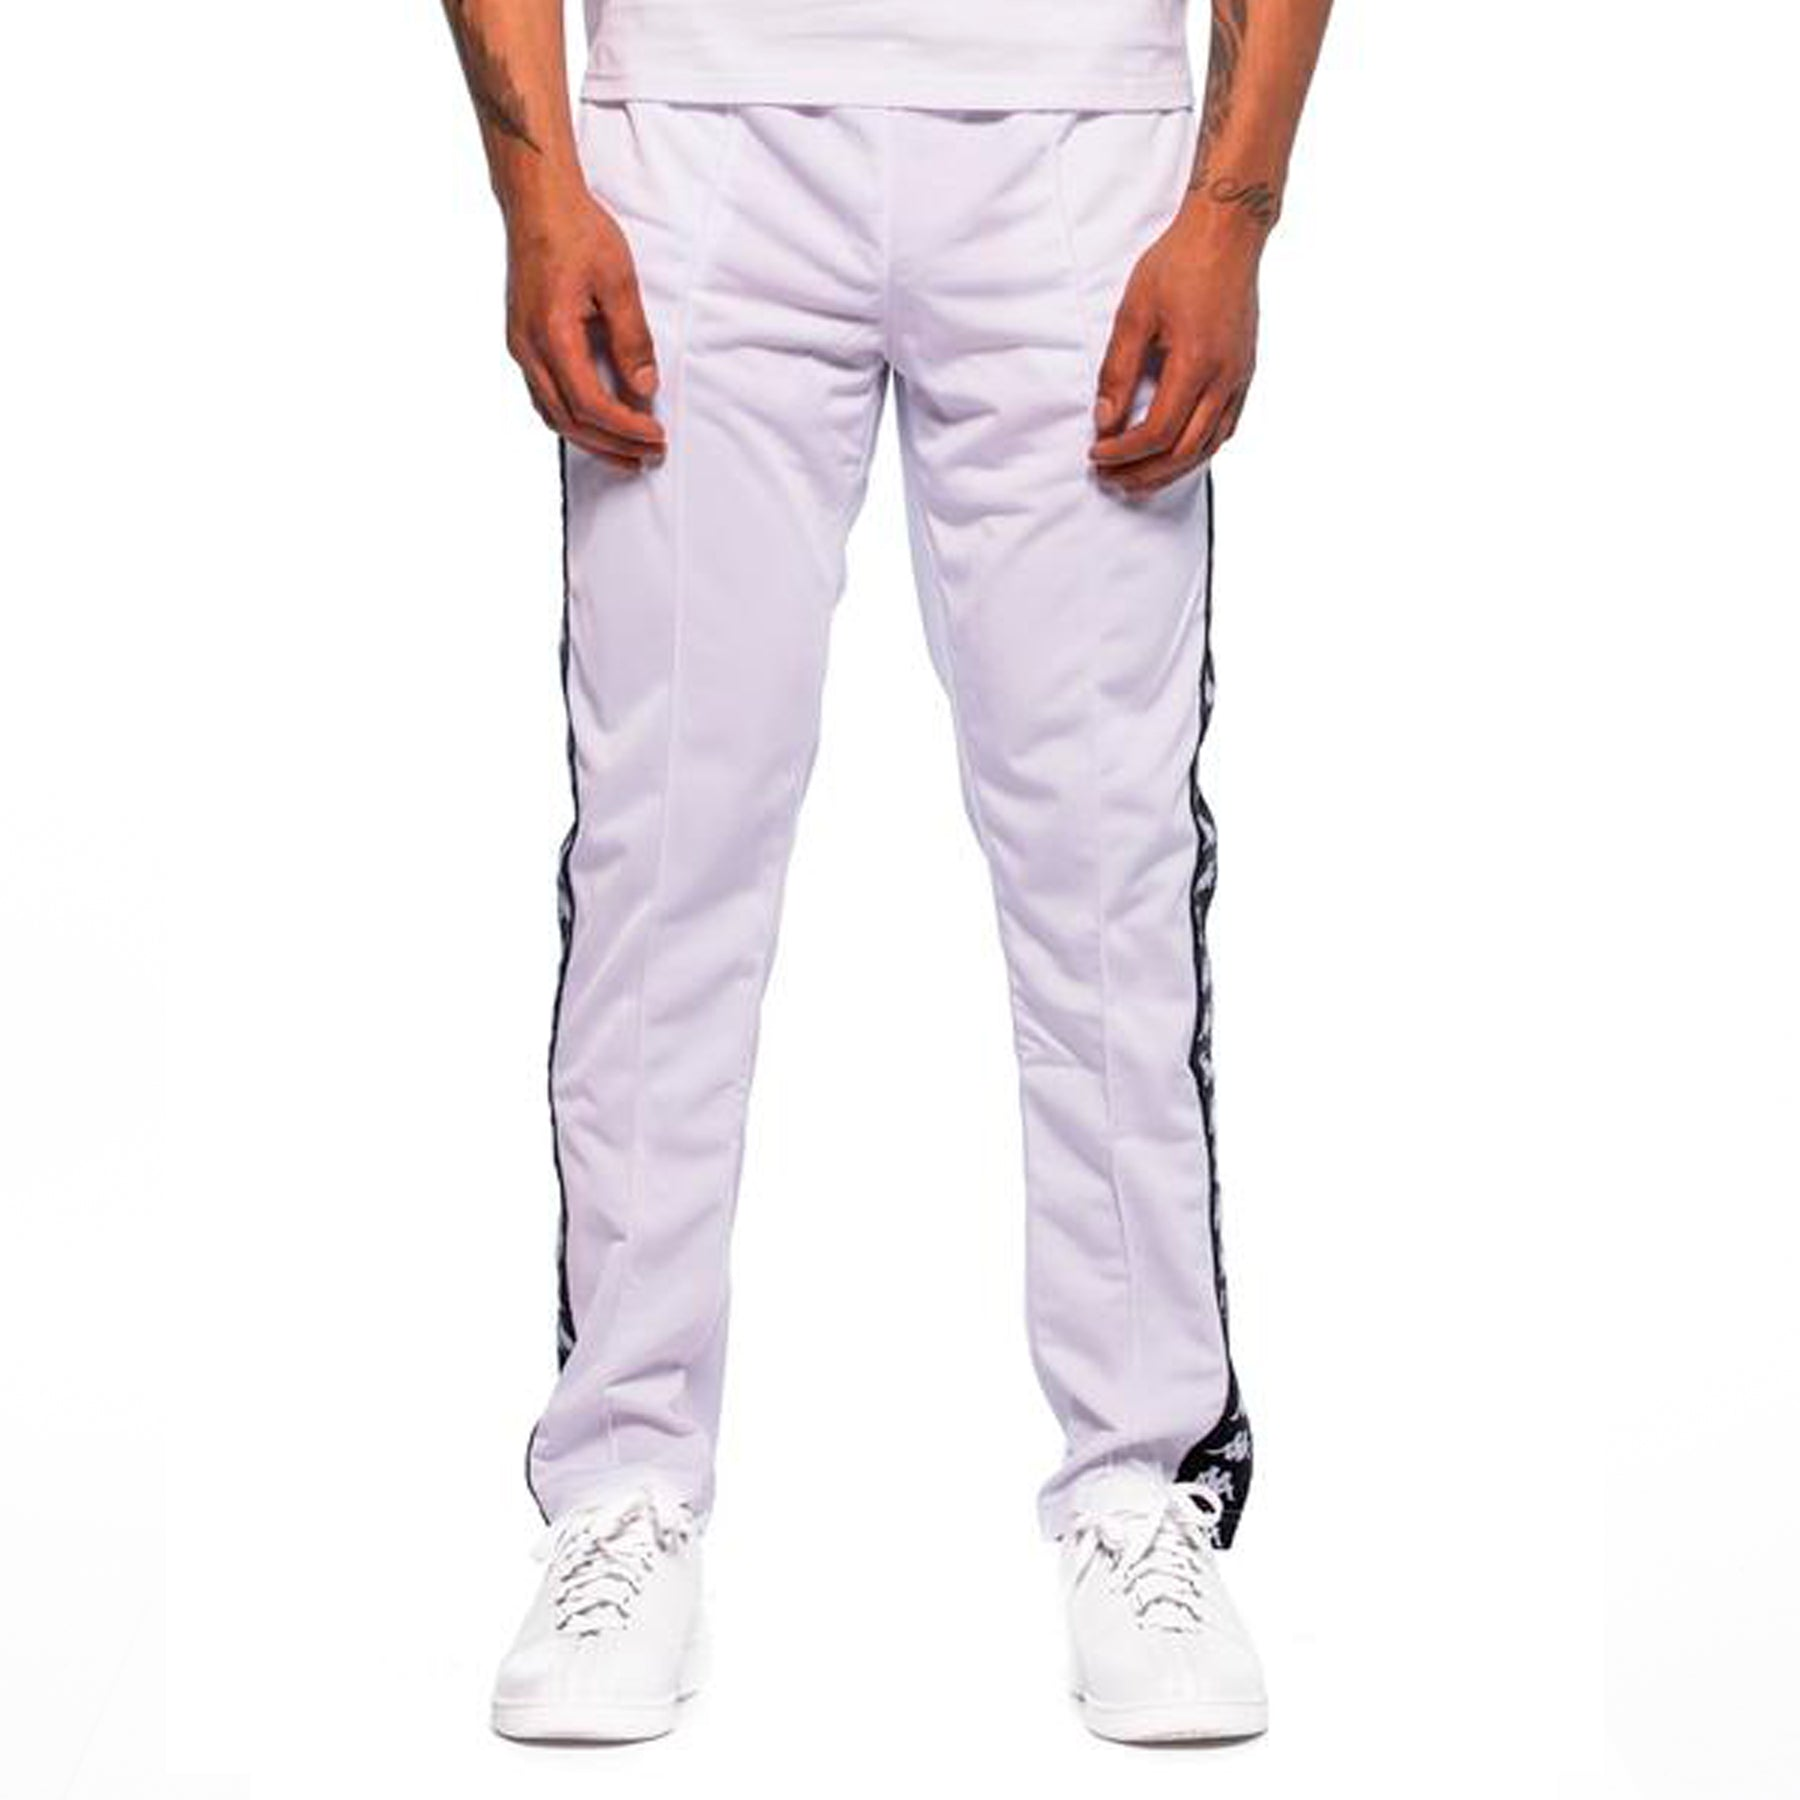 c6ee282c Kappa Mens 222 Banda Astoria Slim White Black Track Pants – Kappa USA